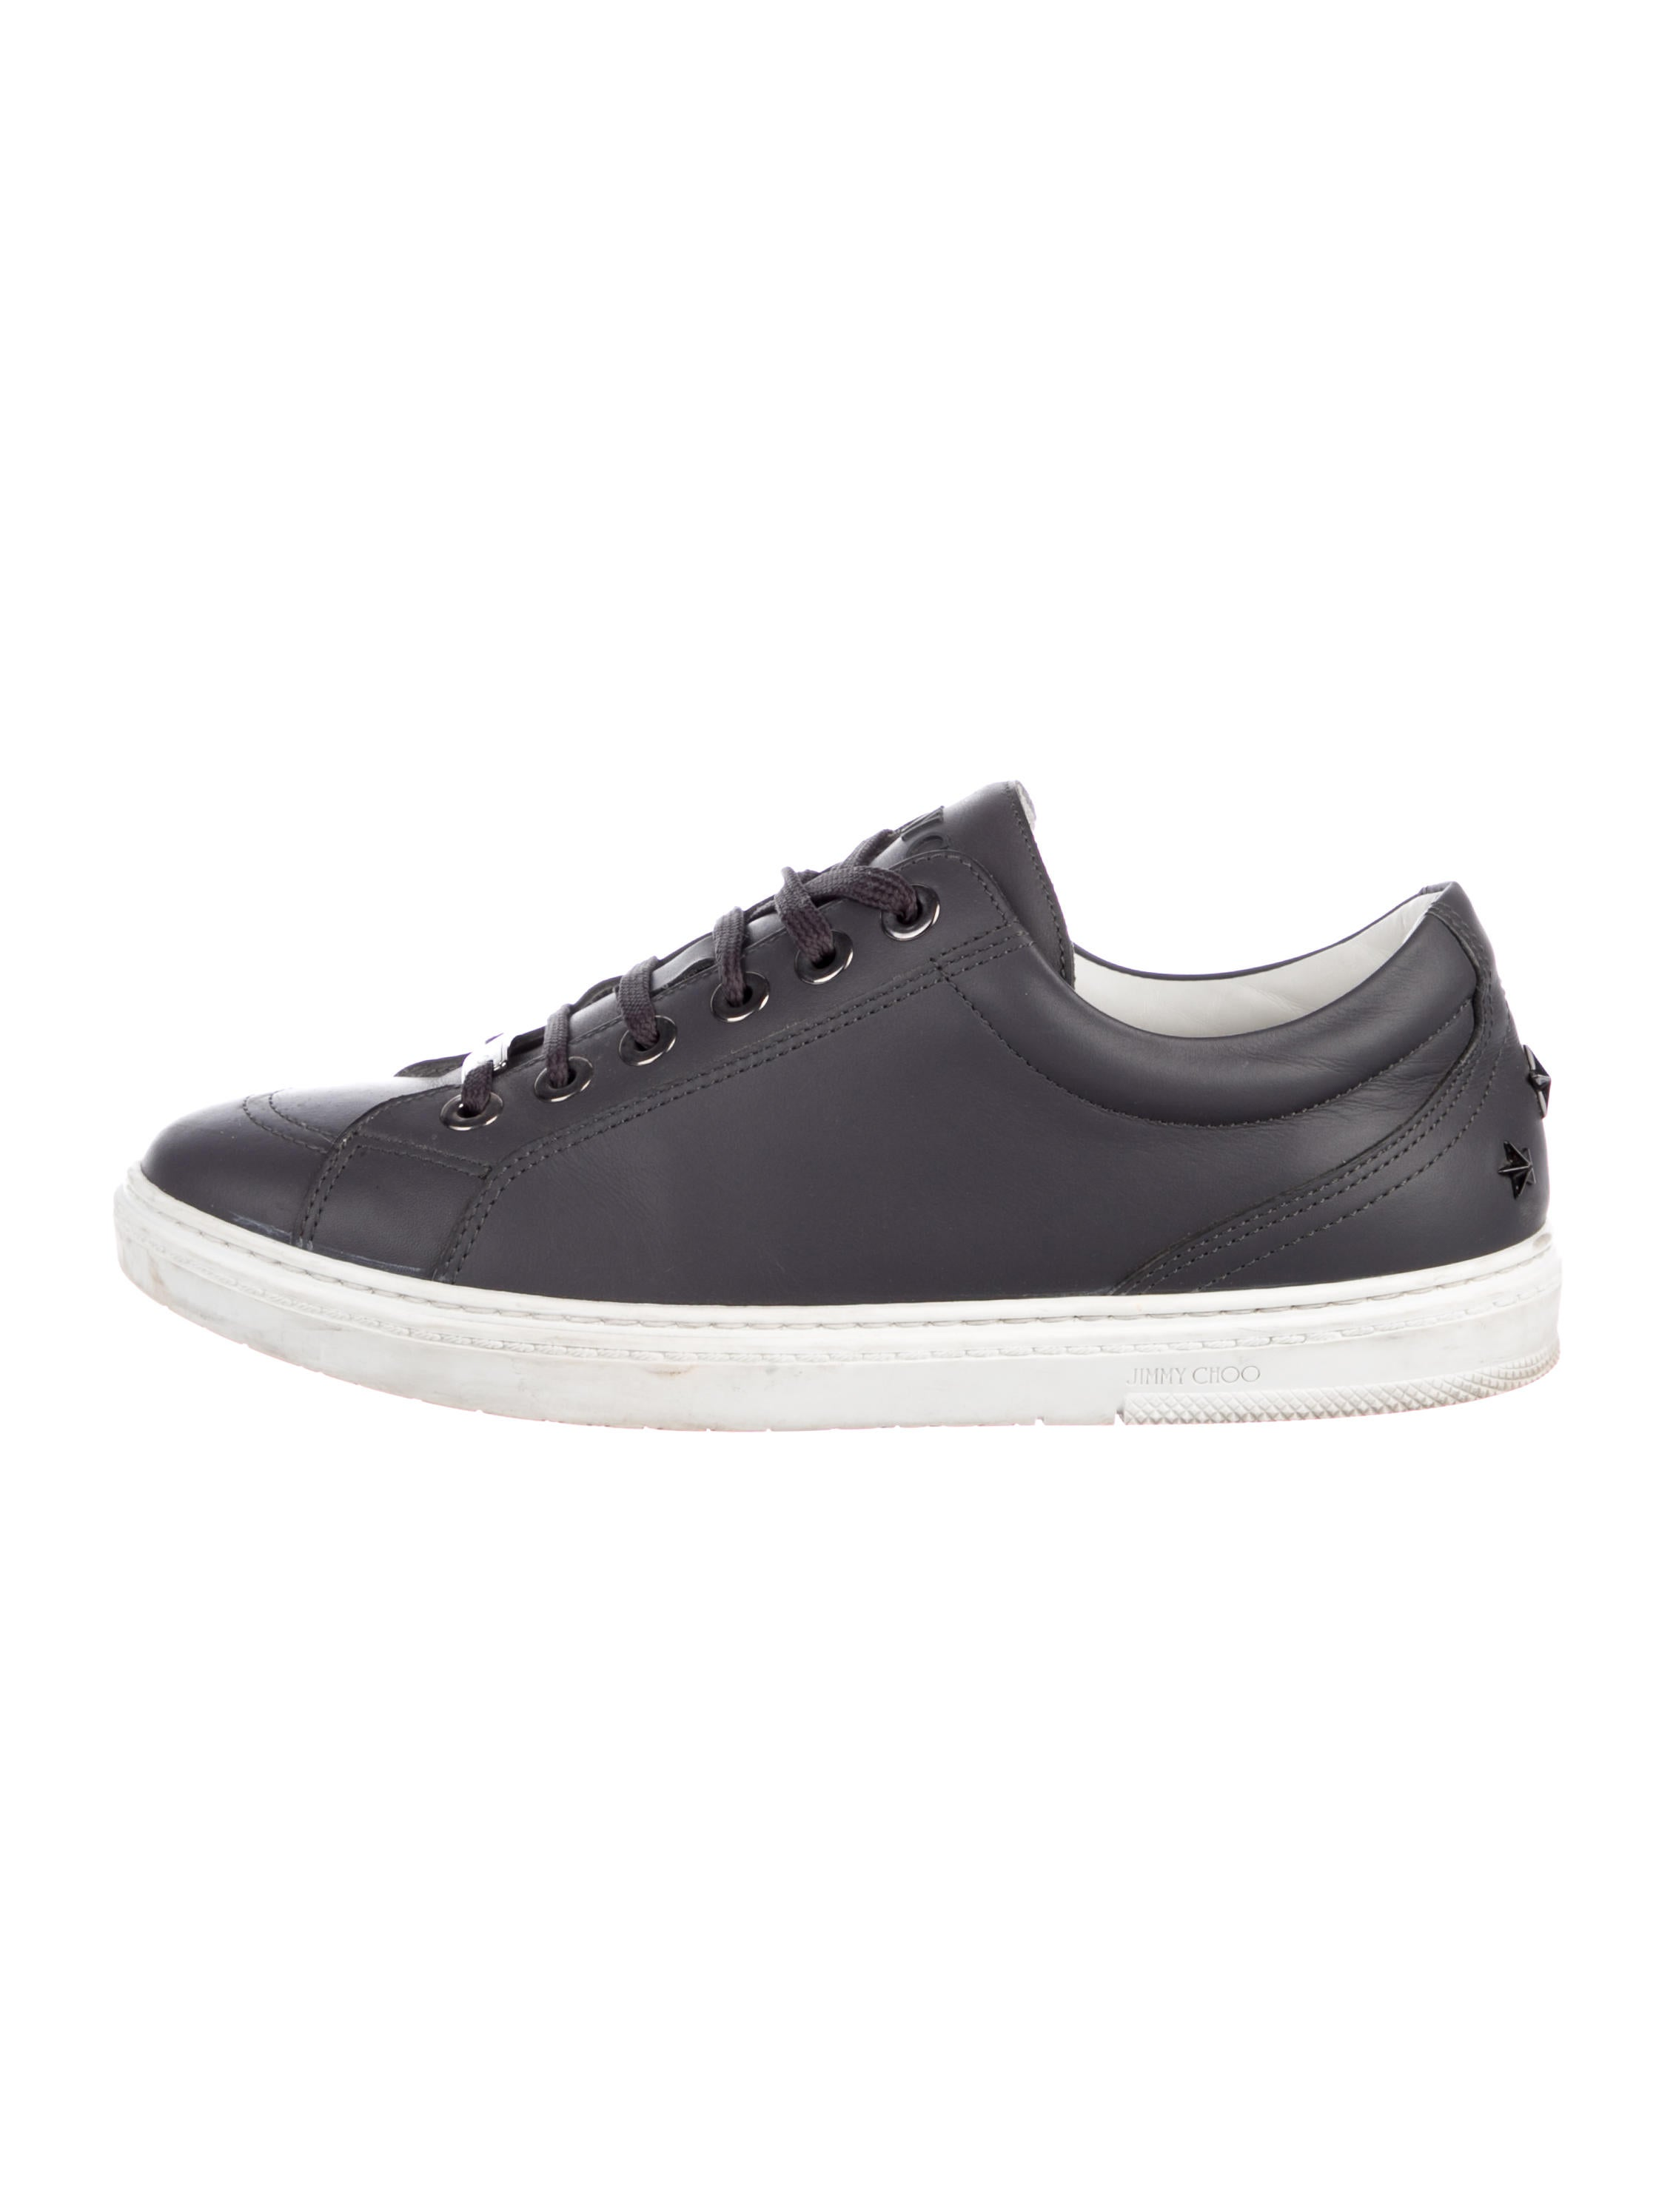 Jimmy Choo Tennis Pelle Leather Sneakers Shoes Jim100392 The